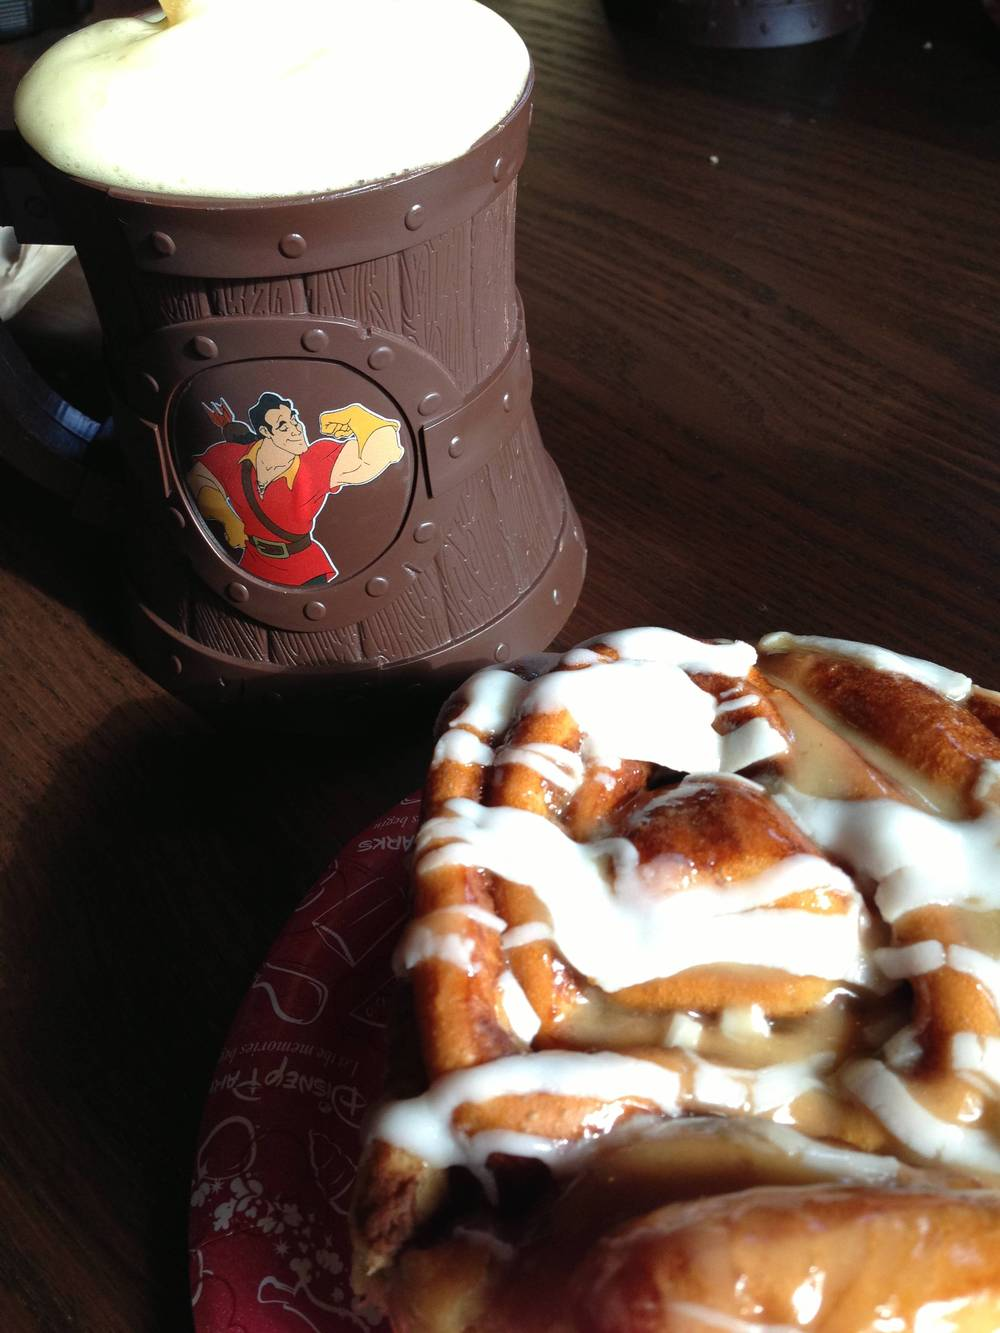 LeFou's Brew and a maple cinnamon roll from Gaston's Tavern.